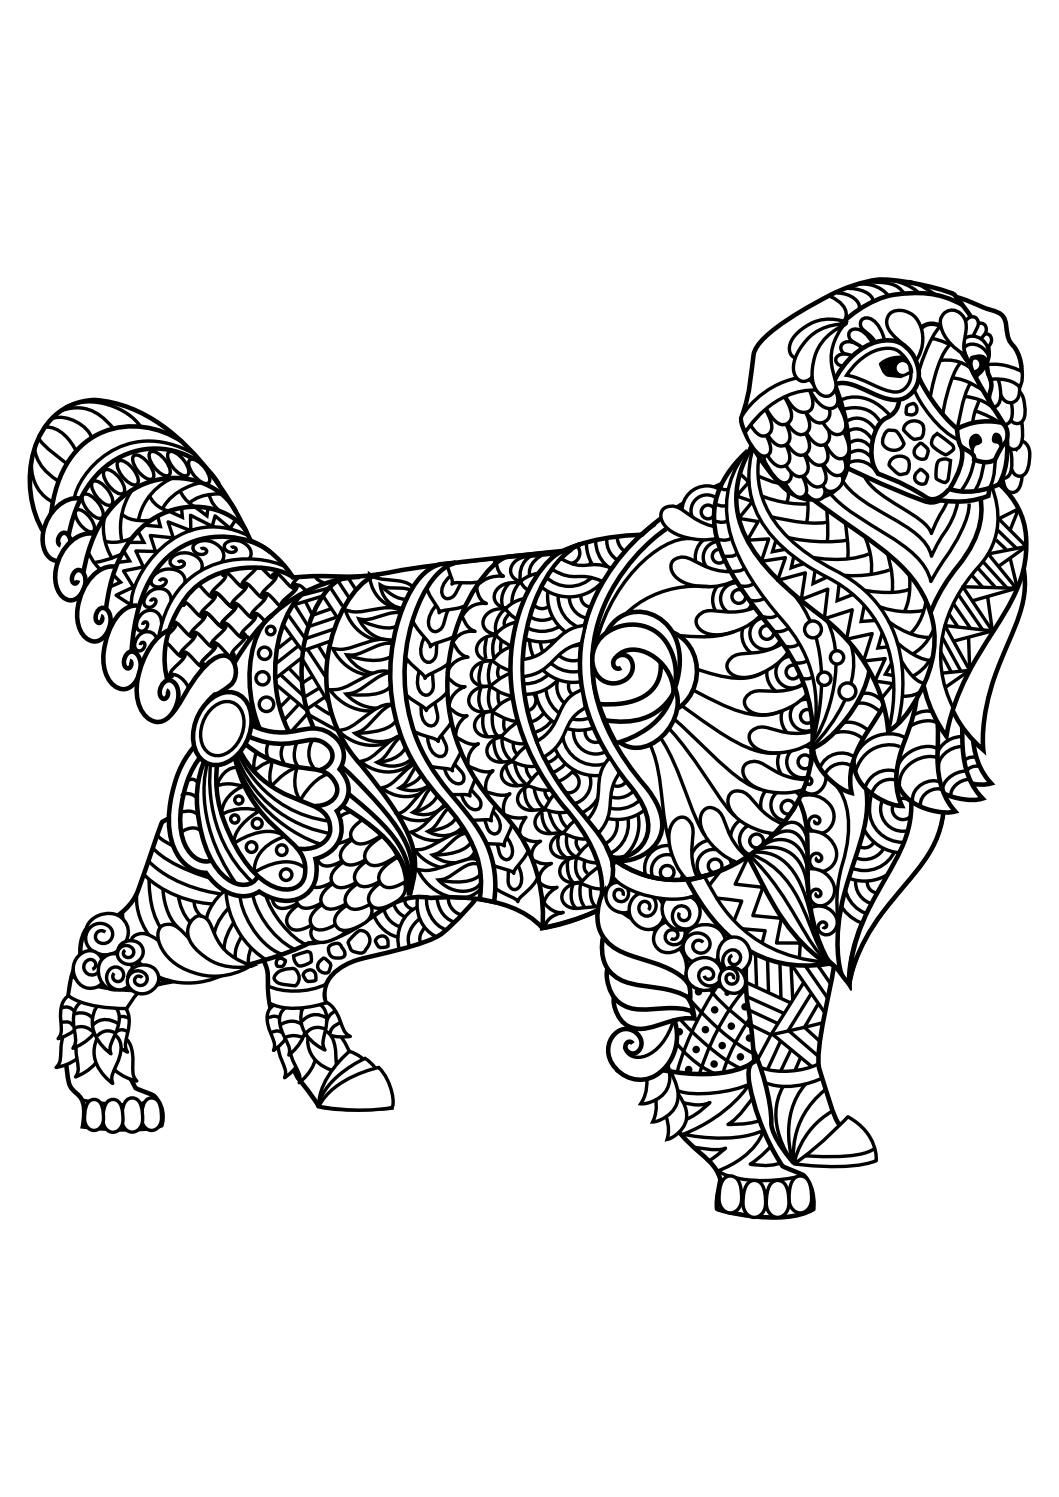 animal coloring pages pdf coloring animals animal coloring pages horse coloring pages. Black Bedroom Furniture Sets. Home Design Ideas